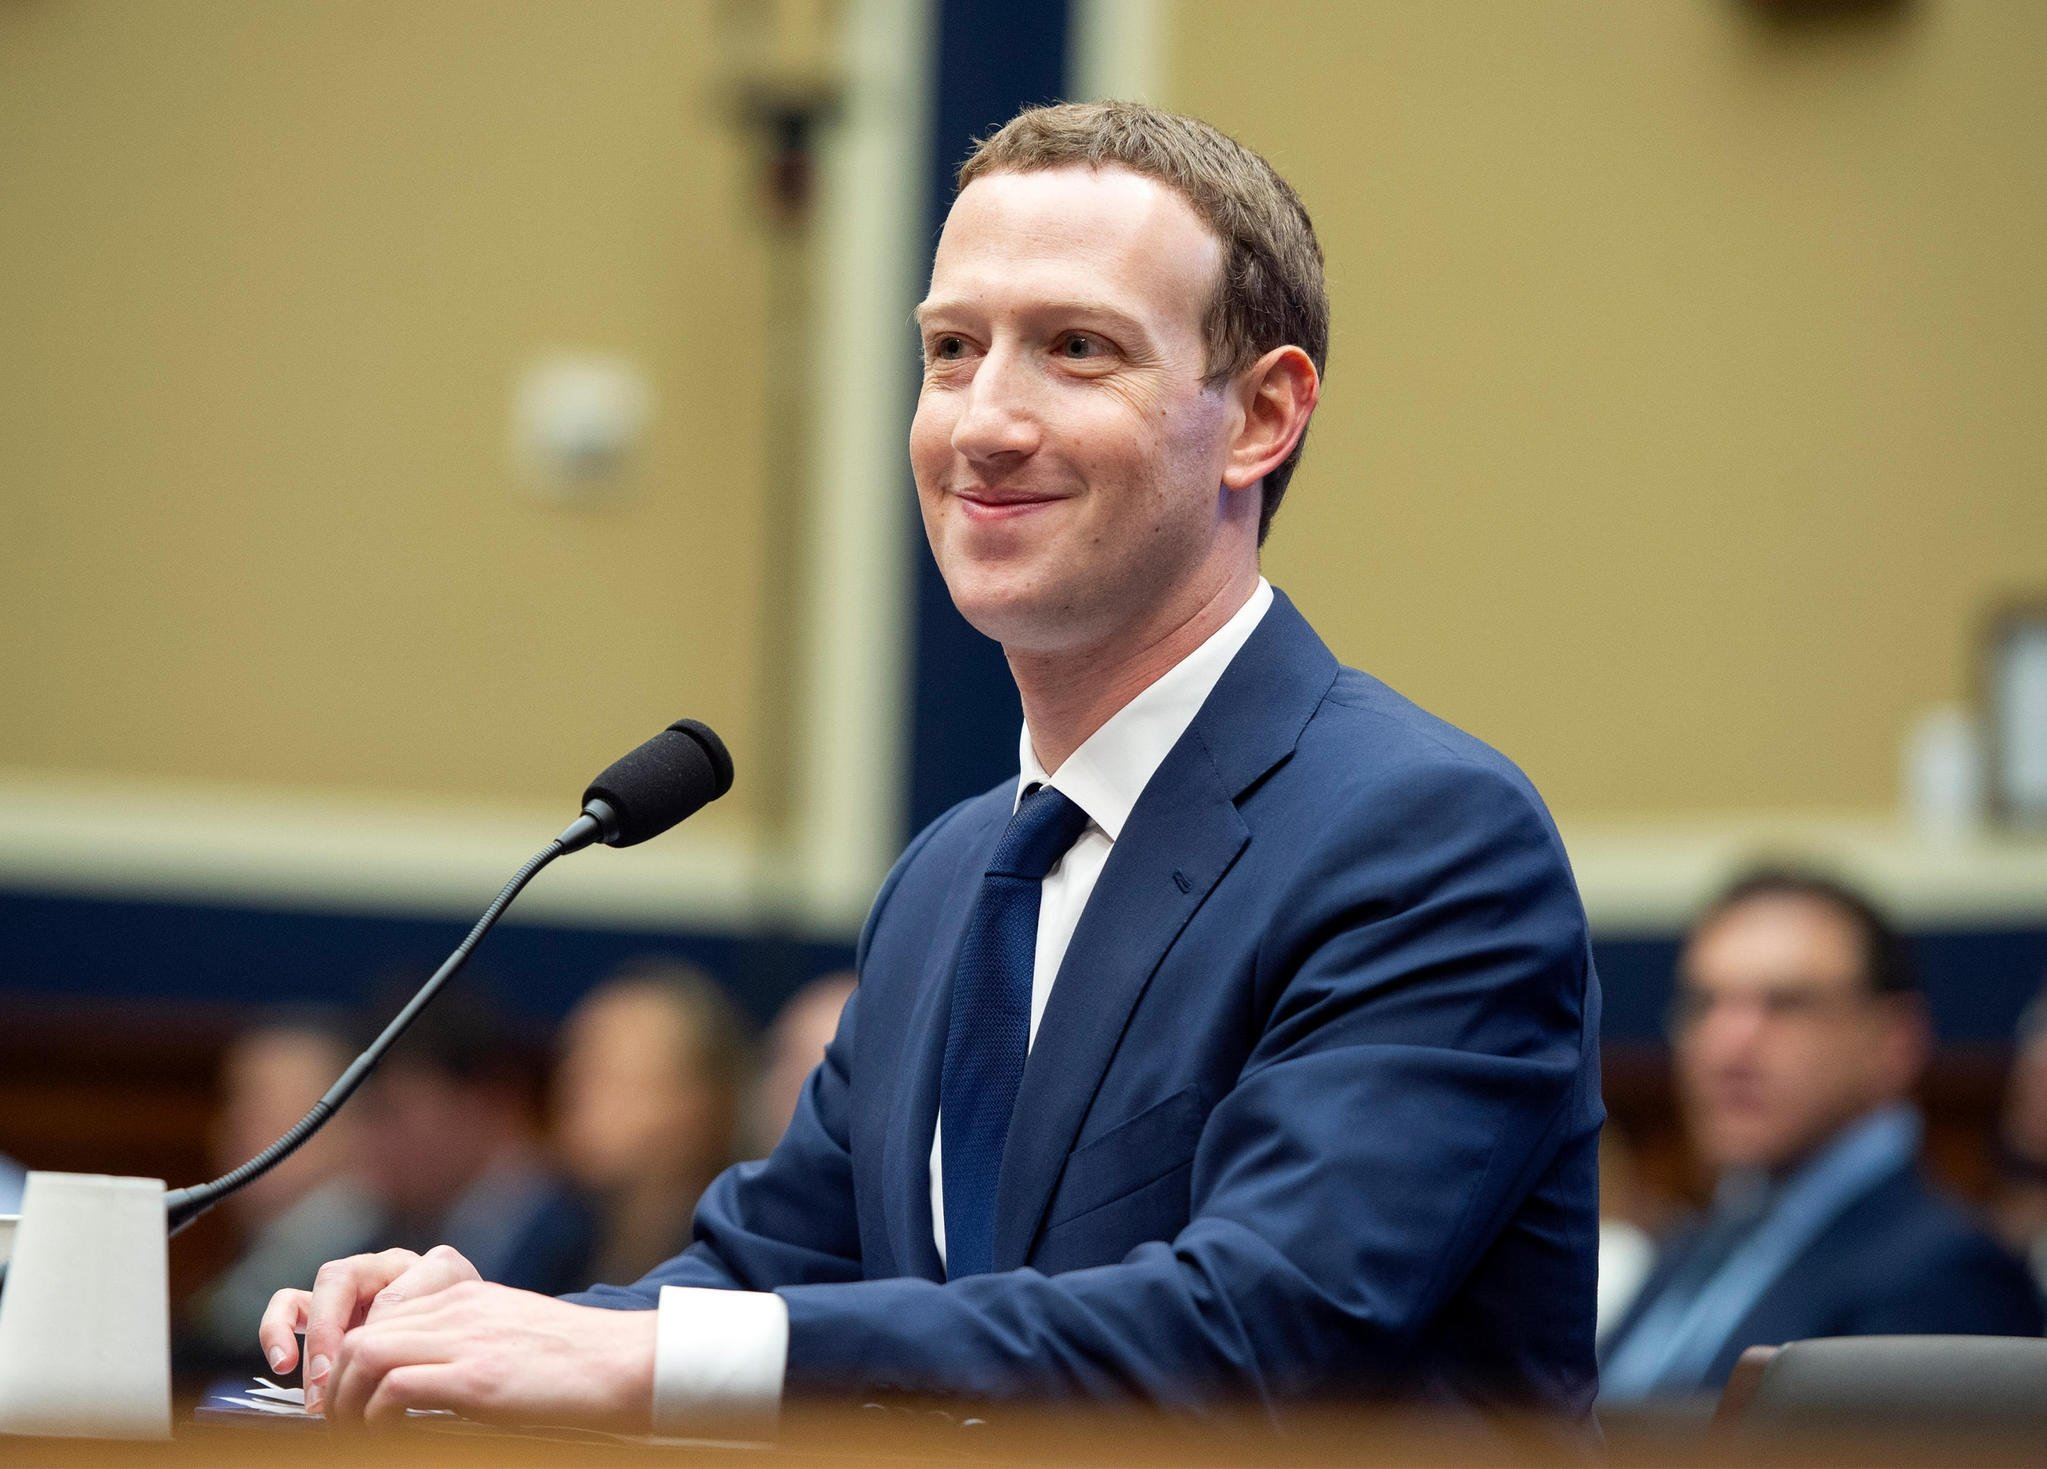 FACEBOOK CEO'SU MARK ZUCKERBERG'İN YENİ PLANI